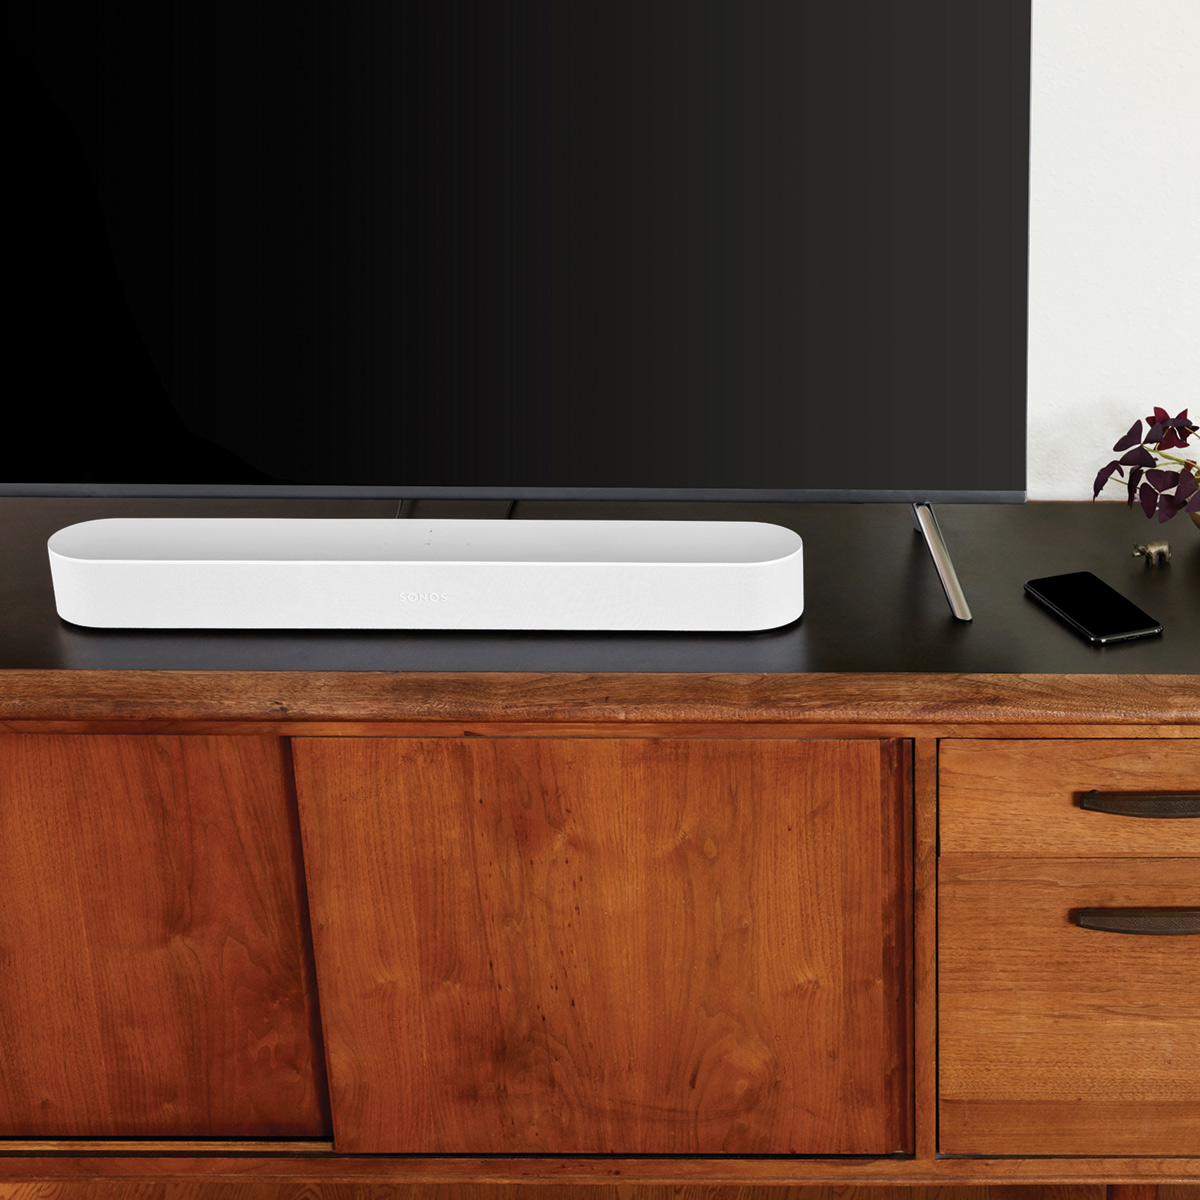 Sonos-Beam-Compact-Smart-Sound-Bar-with-Voice-Control thumbnail 32